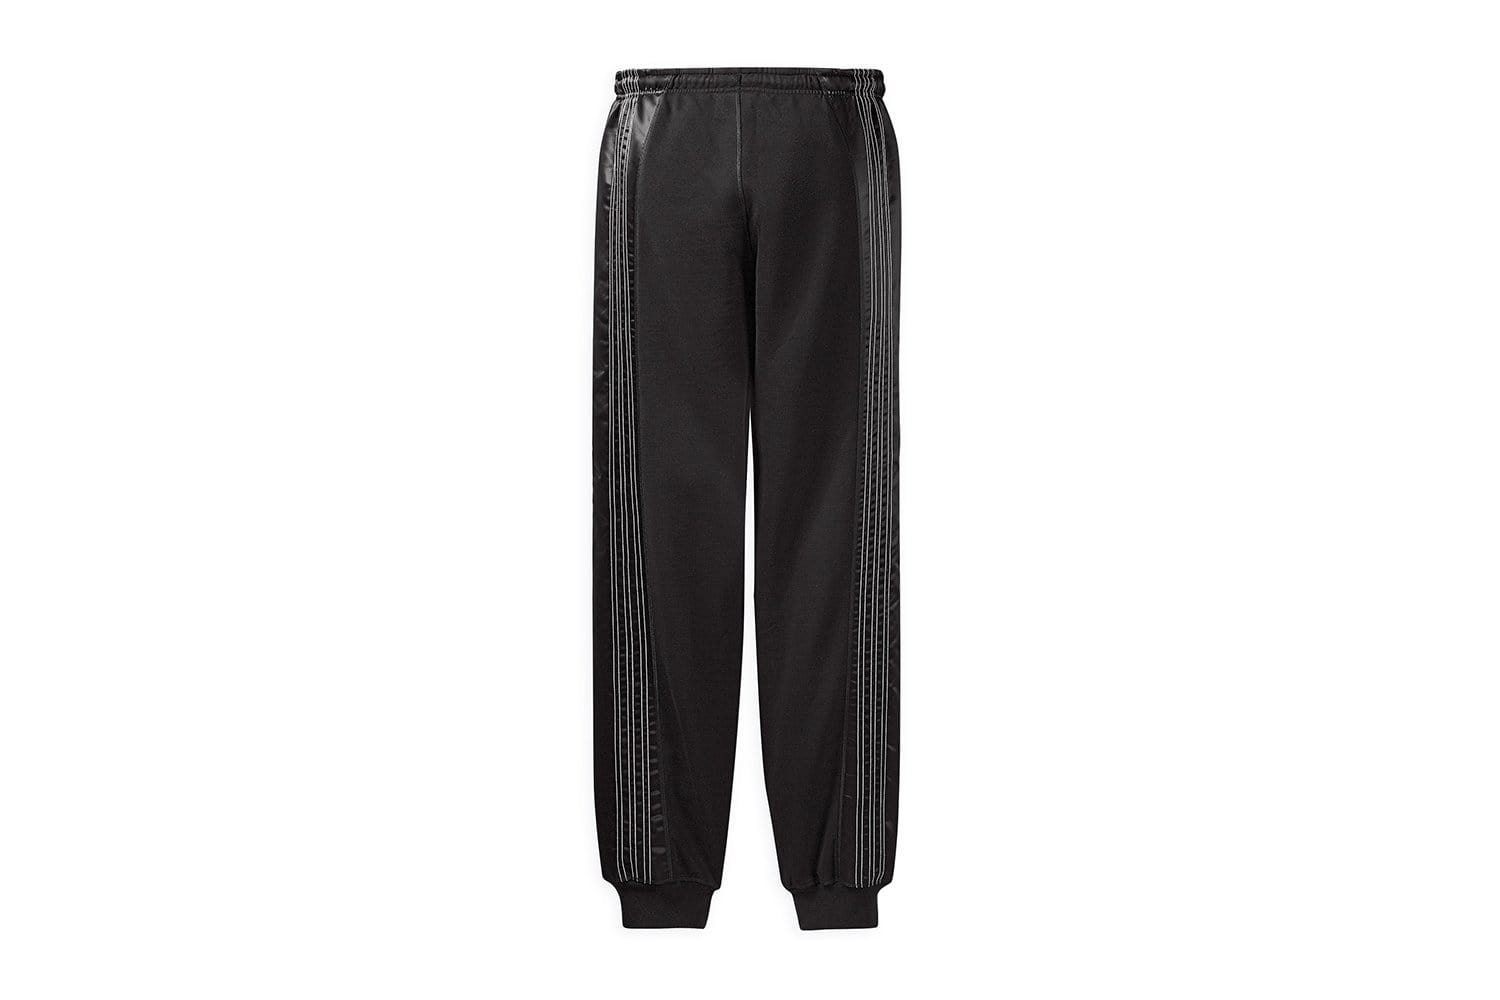 AW JOGGERS - DT9503 MENS SOFTGOODS ADIDAS